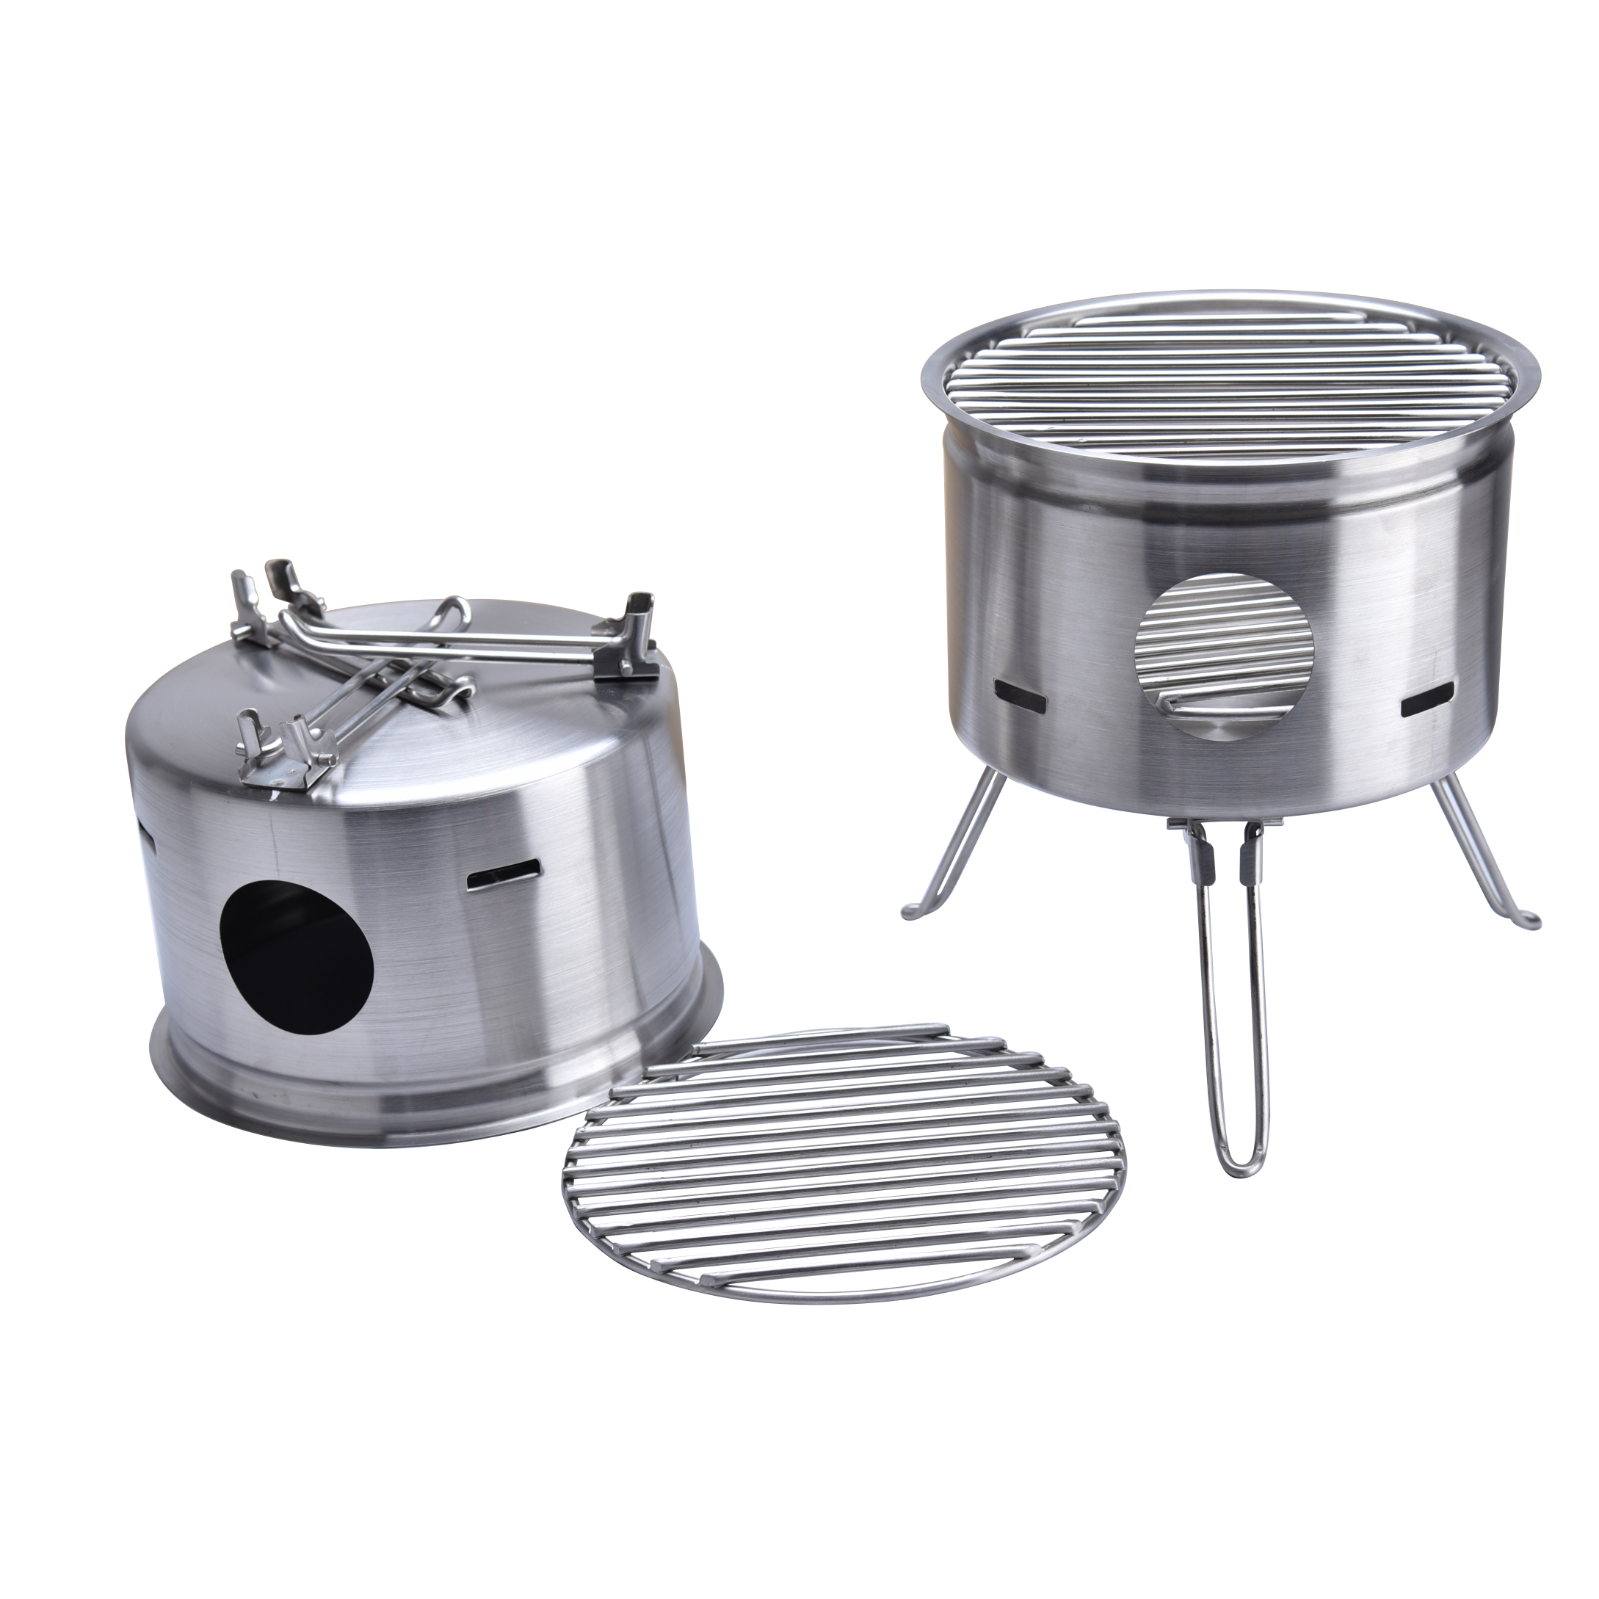 Outdoor Stainless Steel Foldable Camping Wood Stove BBQ Portable Burning Stove